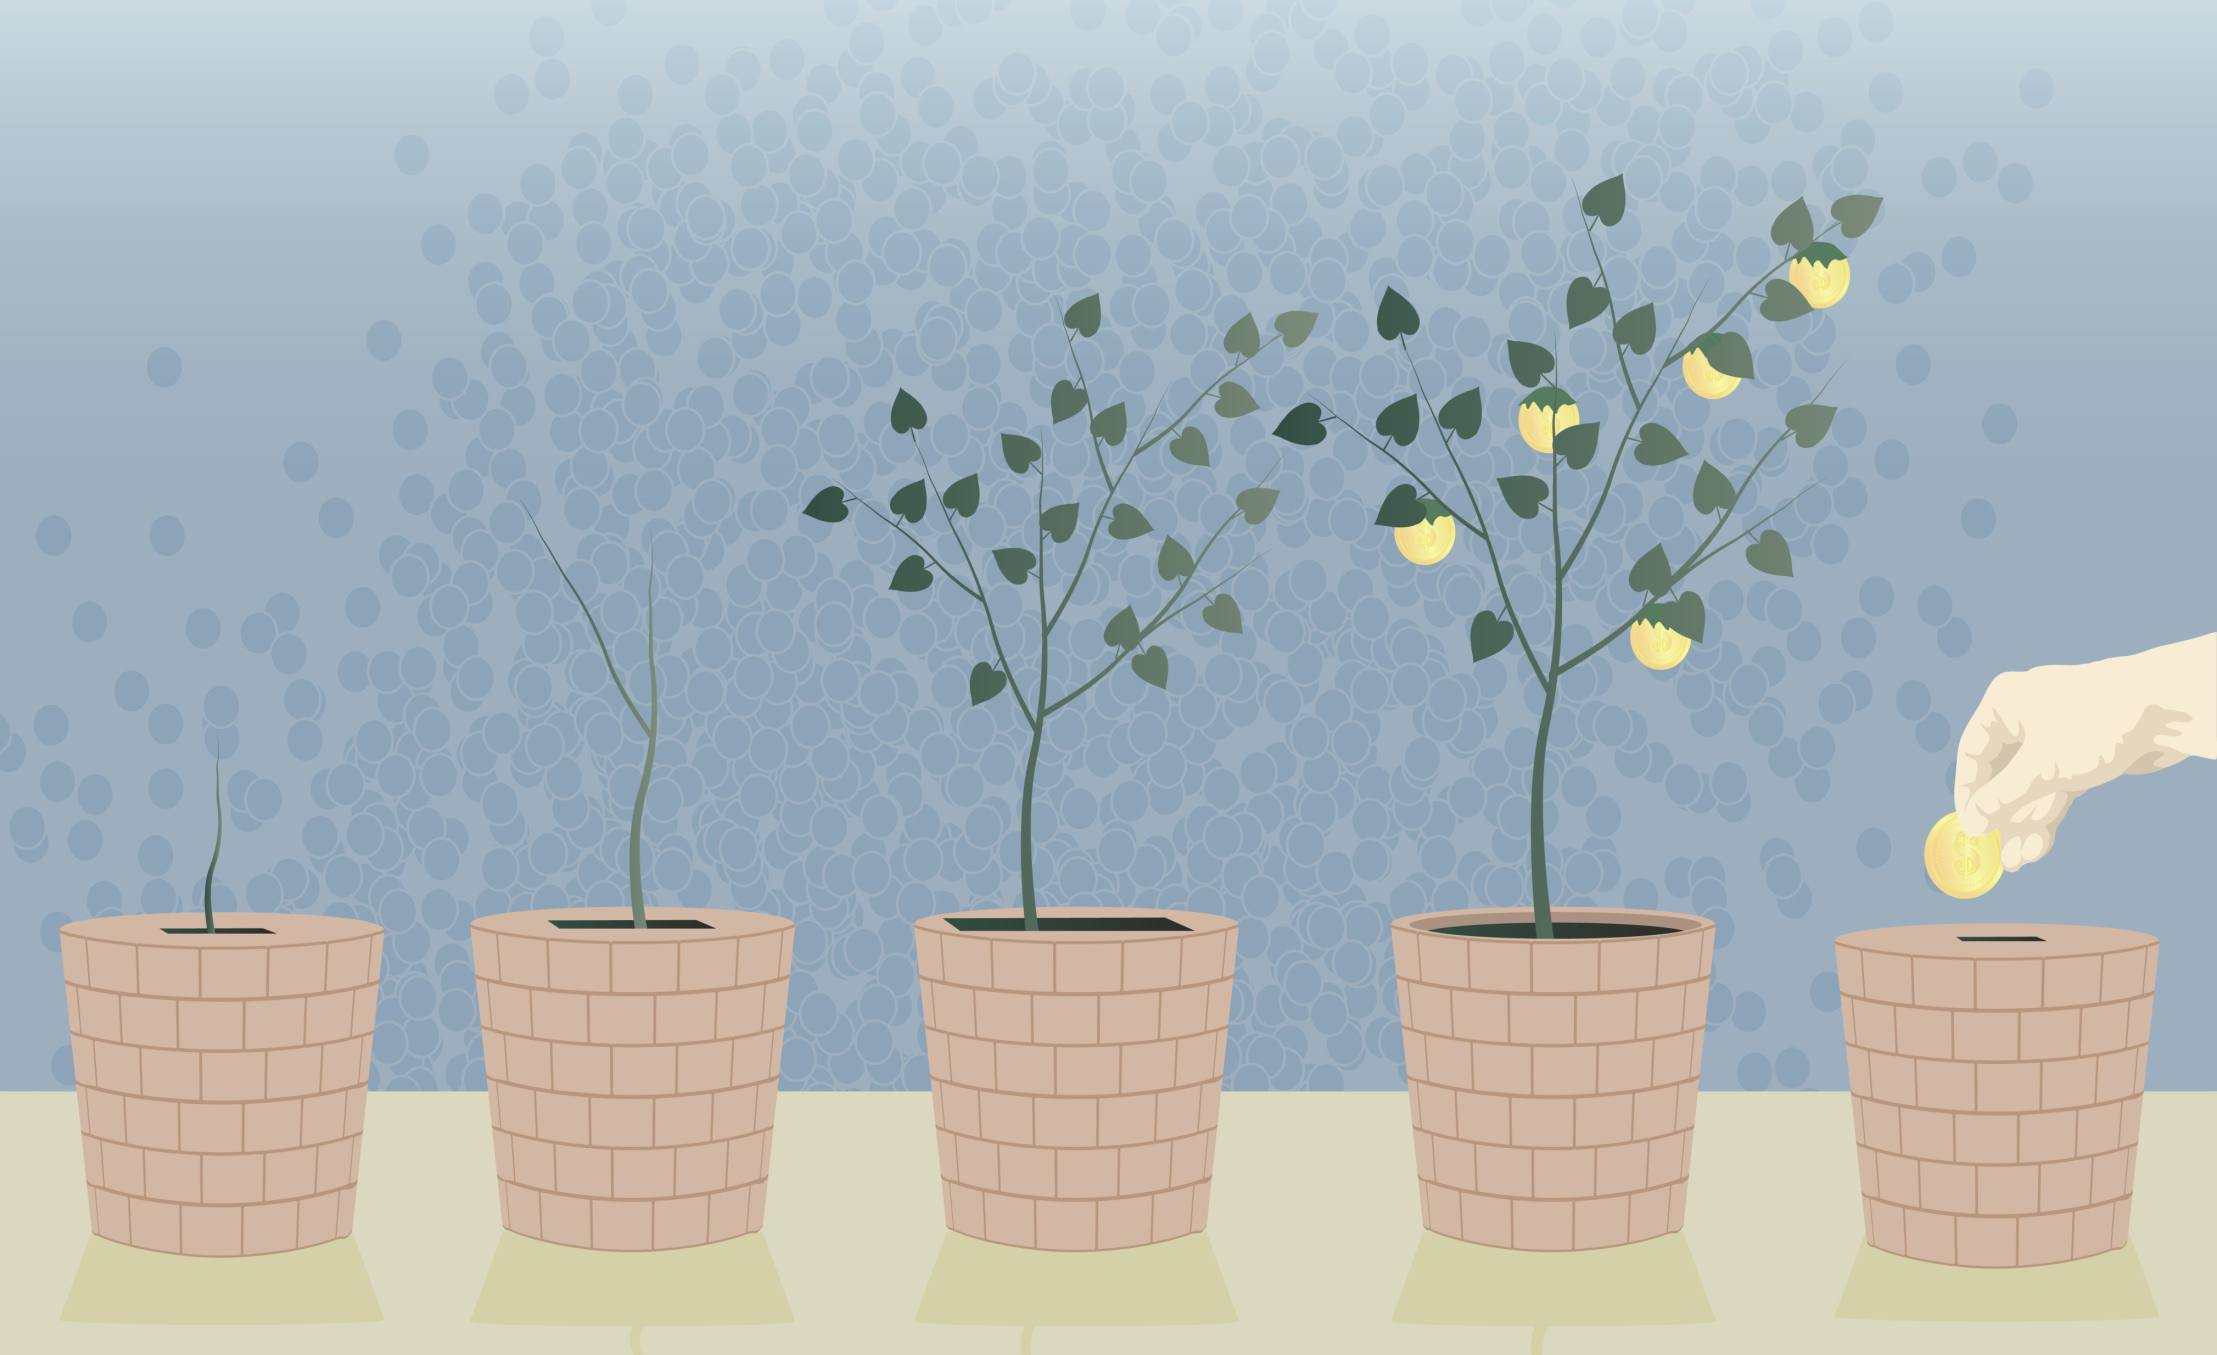 Illustration of a seedling at different stages in different pots, and one pot with a hand putting a seed in it